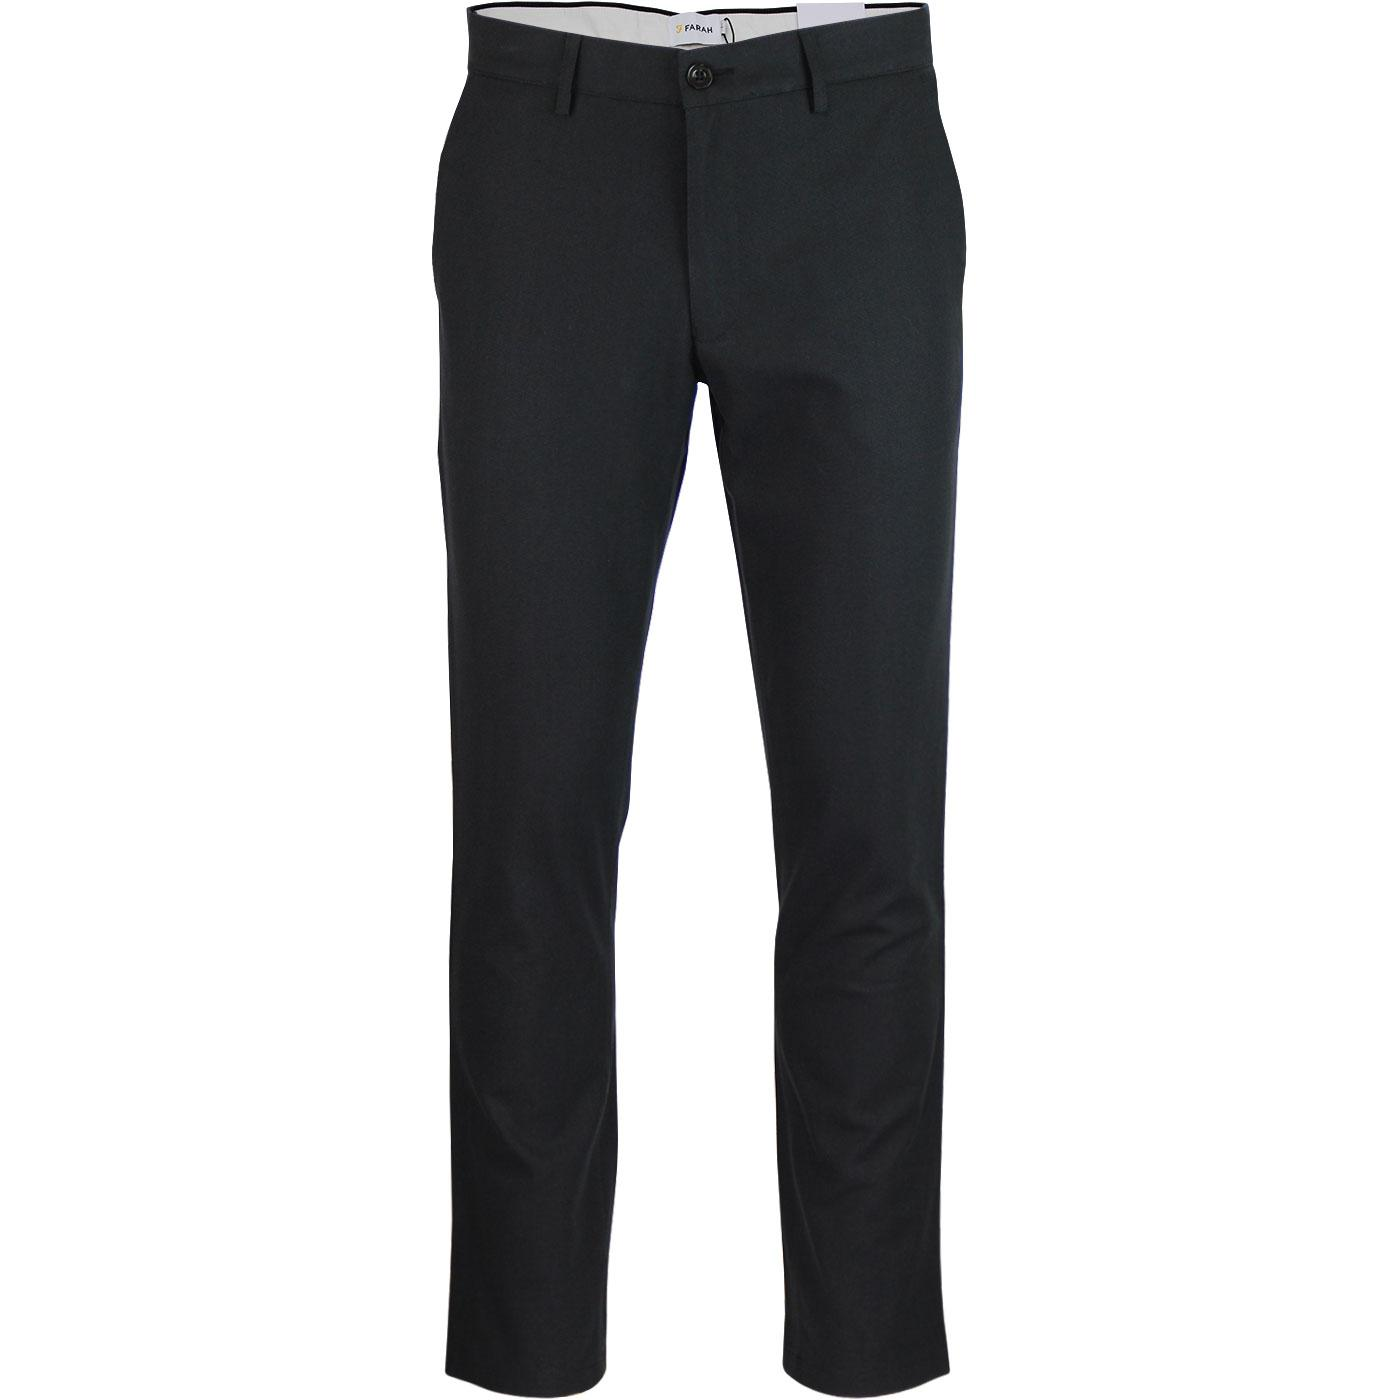 Elm FARAH Retro Mod Slim Hopsack Trousers (Black)